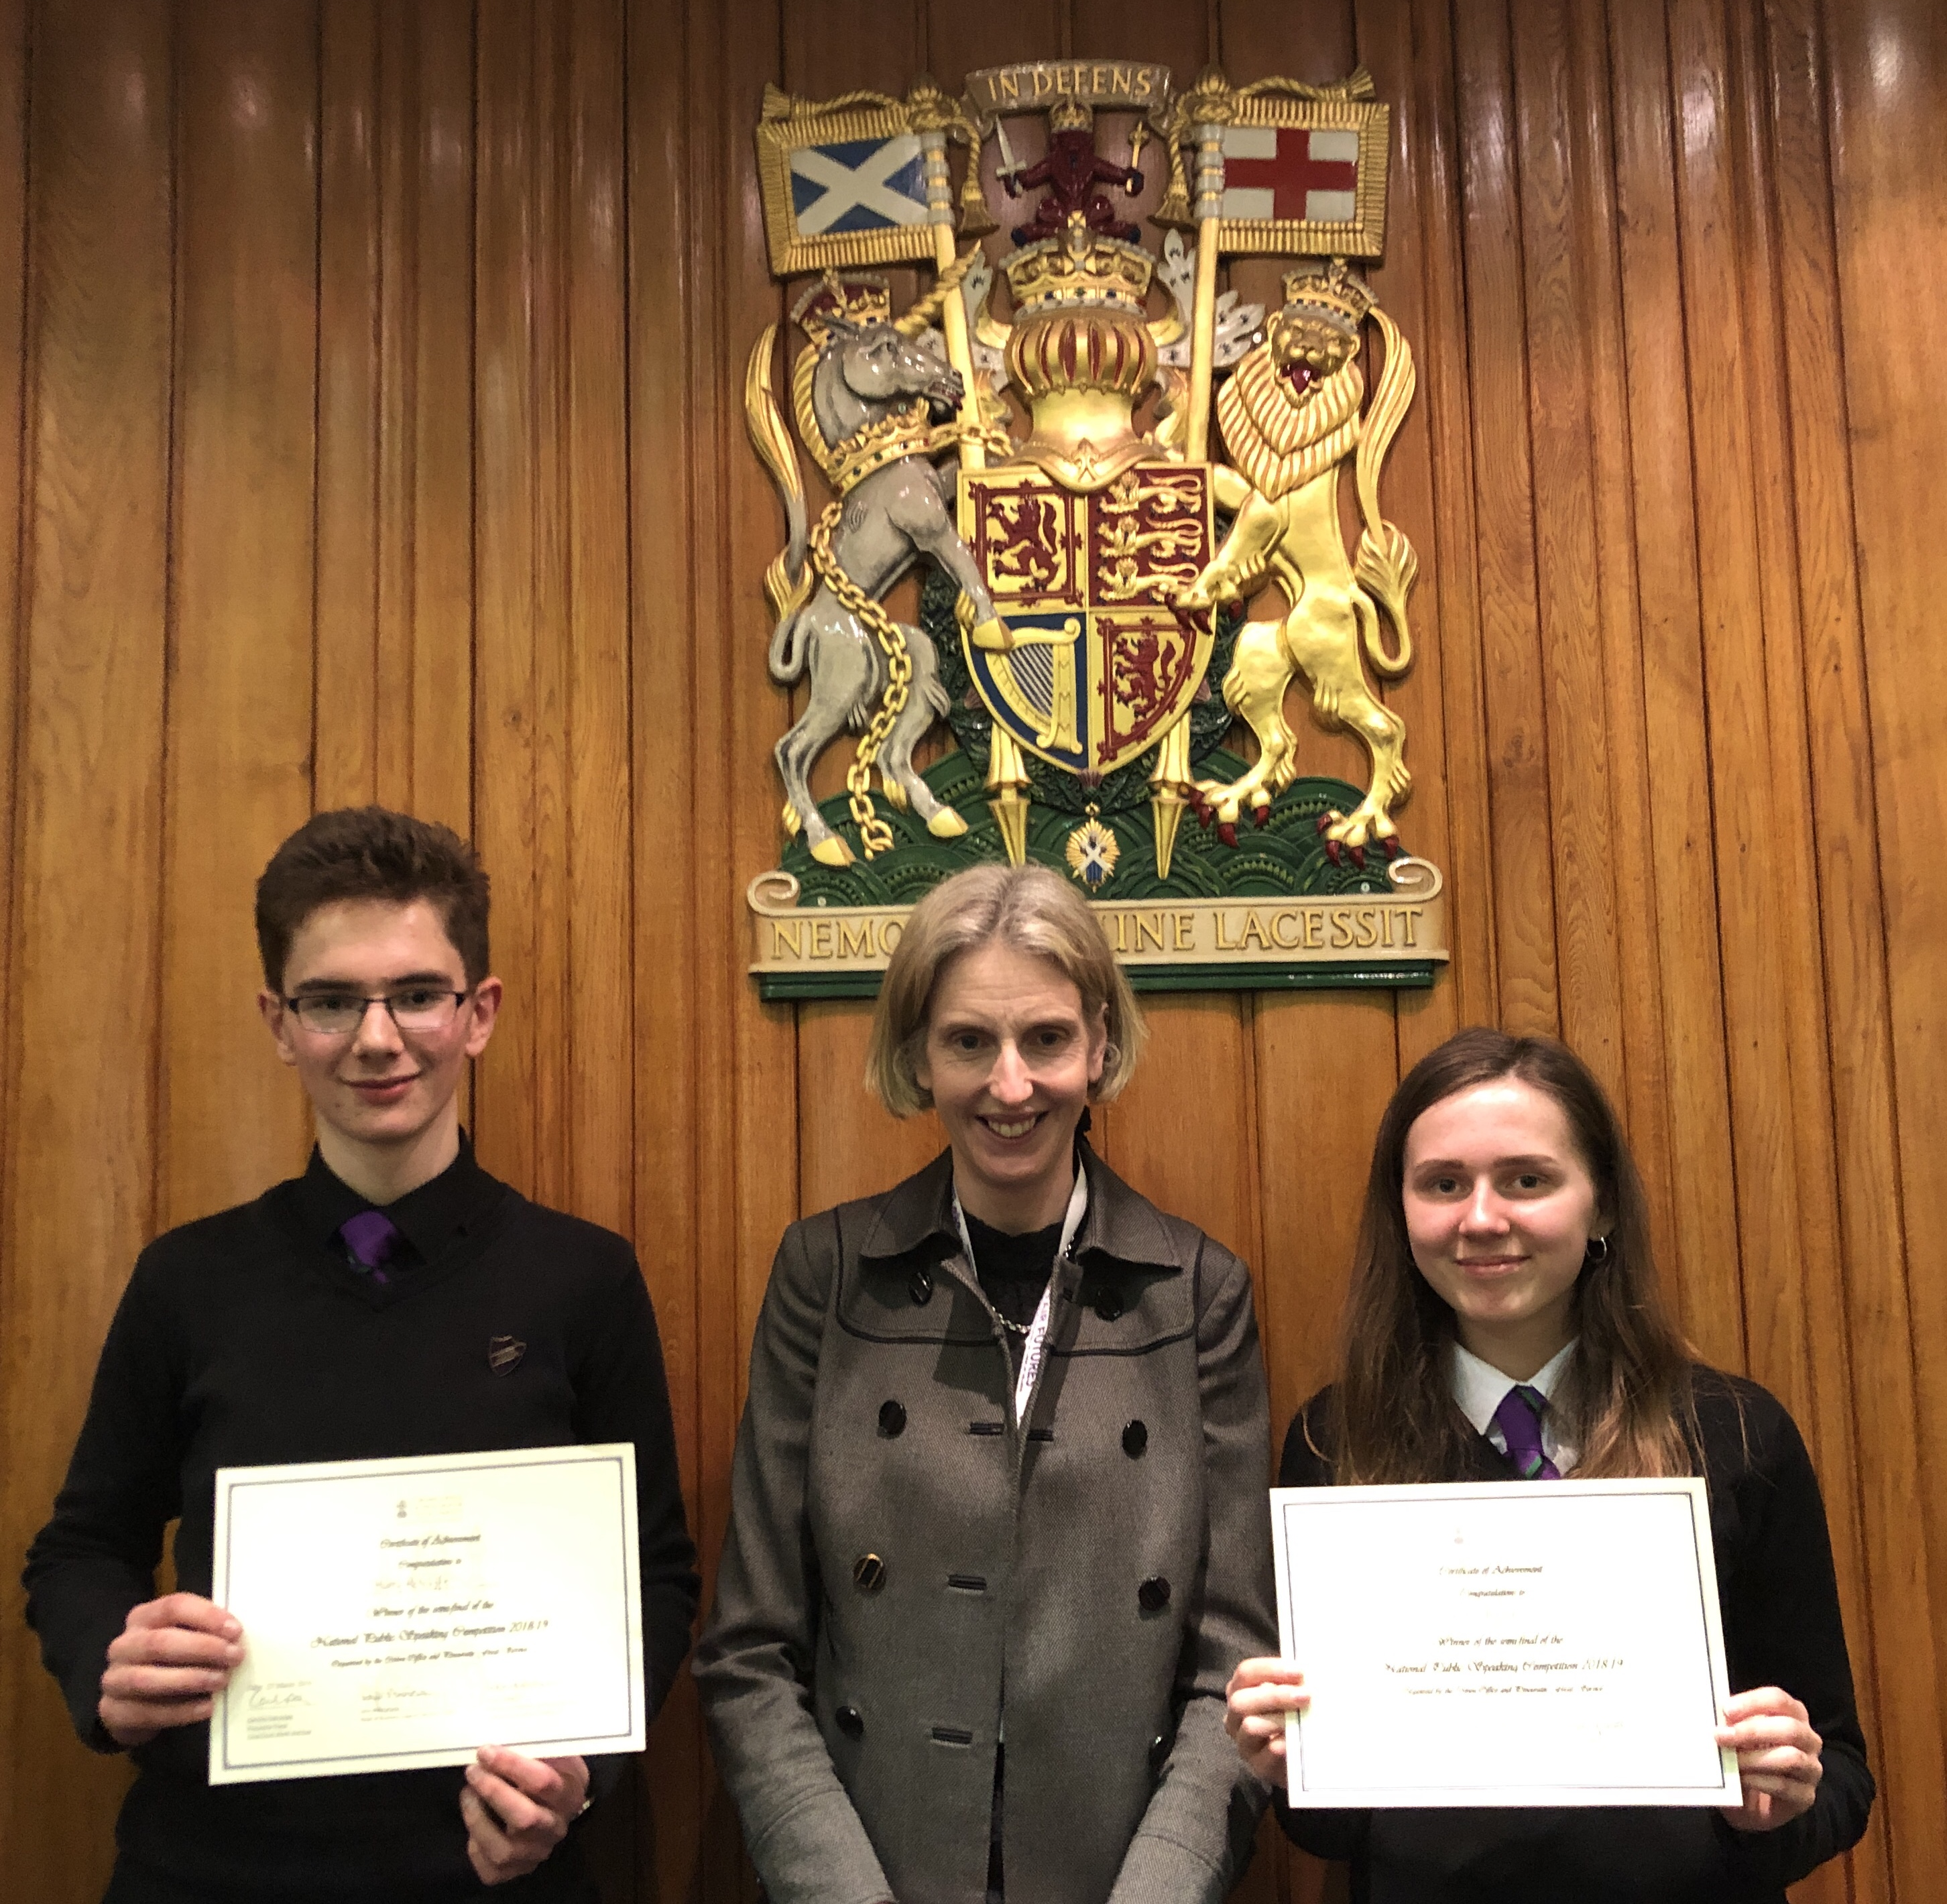 Harry Ratcliffe and Lauren Parsons pictured with Catriona Dalrymple, presiding judge of the semi-final and Procurator Fiscal for Local Courts in the North and East of Scotland following their victorious semi-final appearance